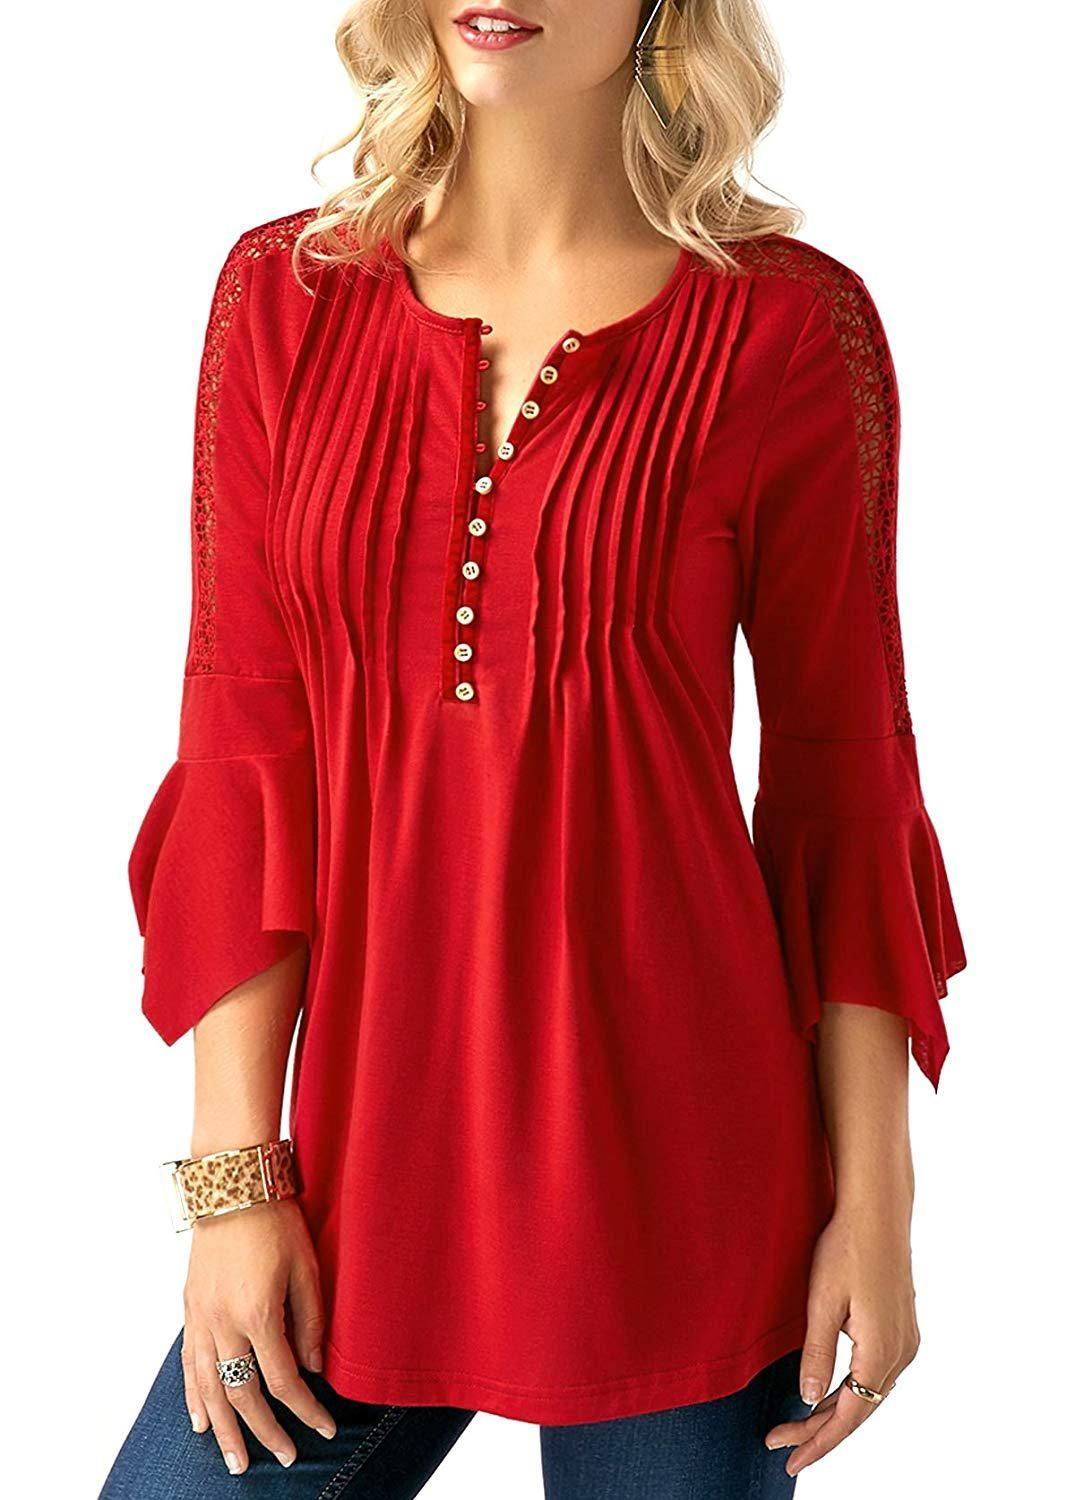 c9acce7cbffc Bzonly Summer Women Shirts 34 Bell Sleeve Blouse Button Pleated Henley Tops  at Amazon Womens Clothing store -- Amazon Affiliate link.